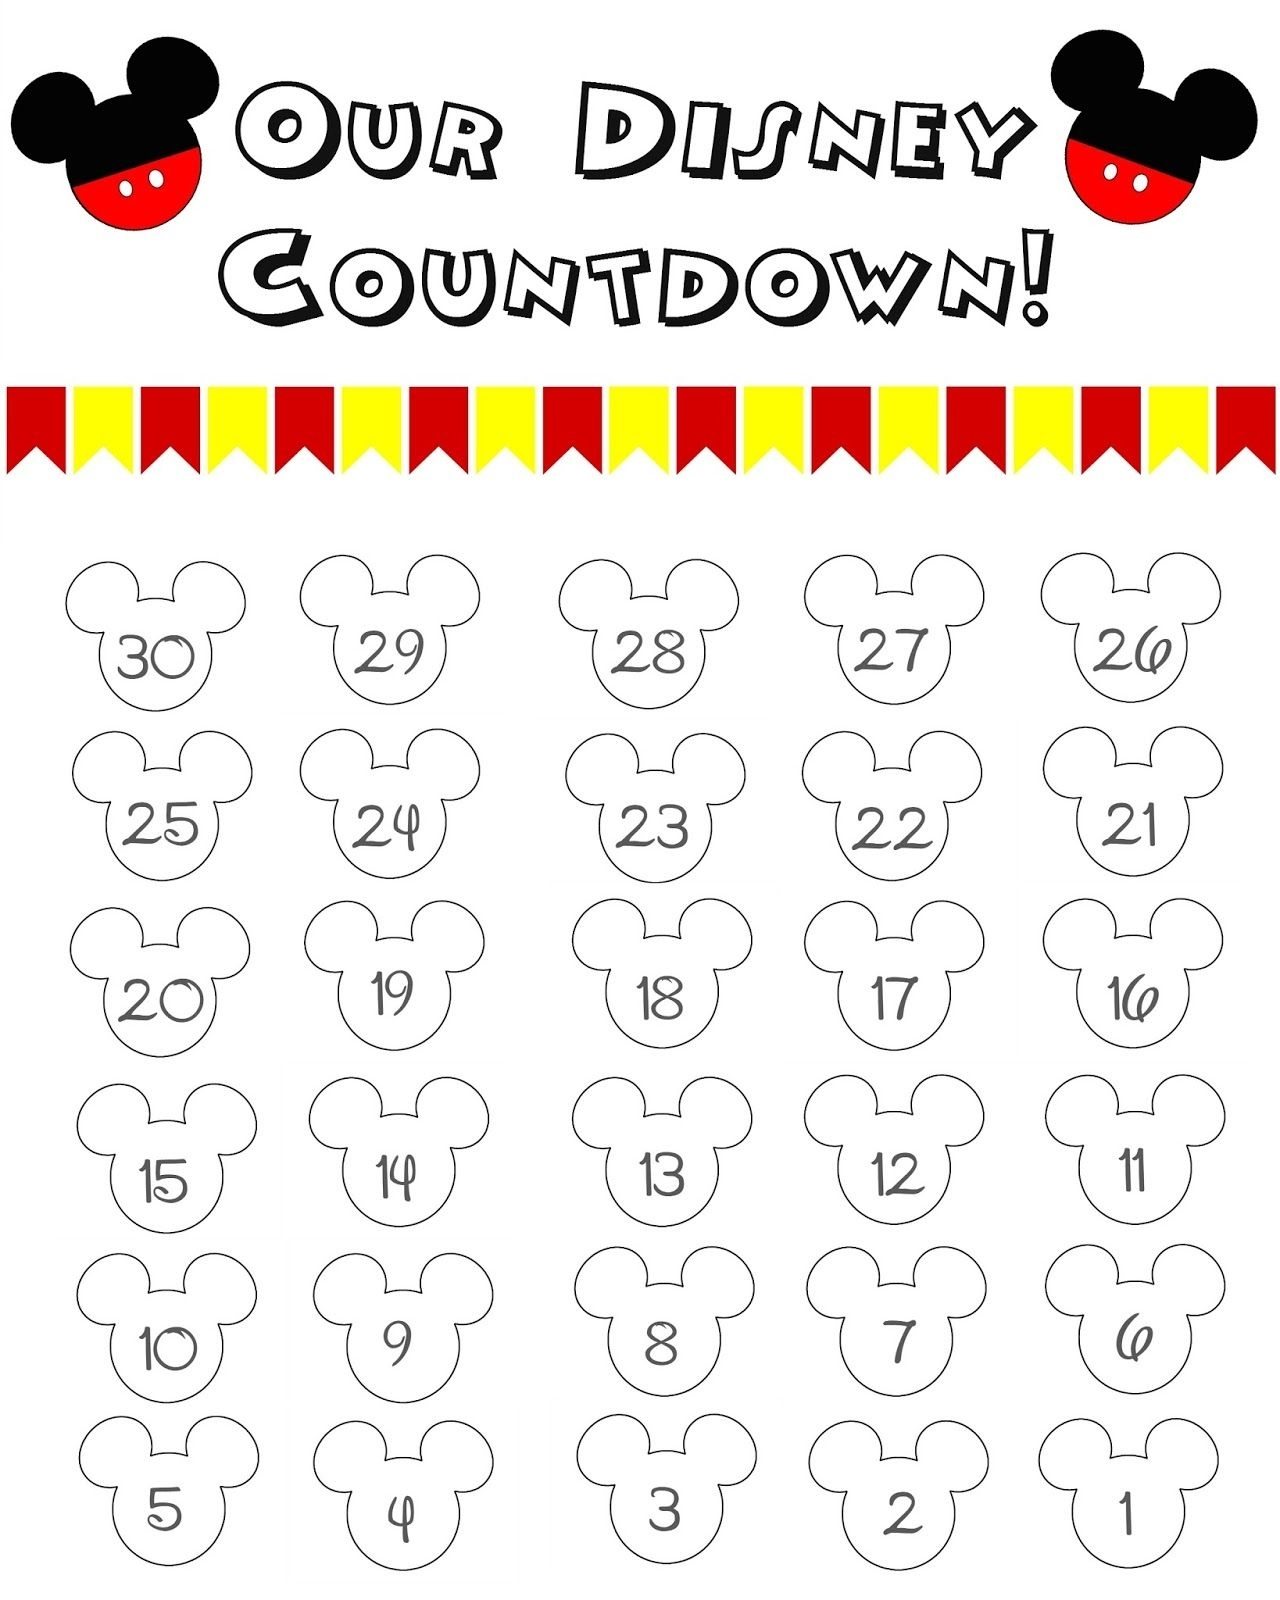 Disney World Countdown Calendar - Free Printable | The Momma Diaries Countdown Calendar In Weeks